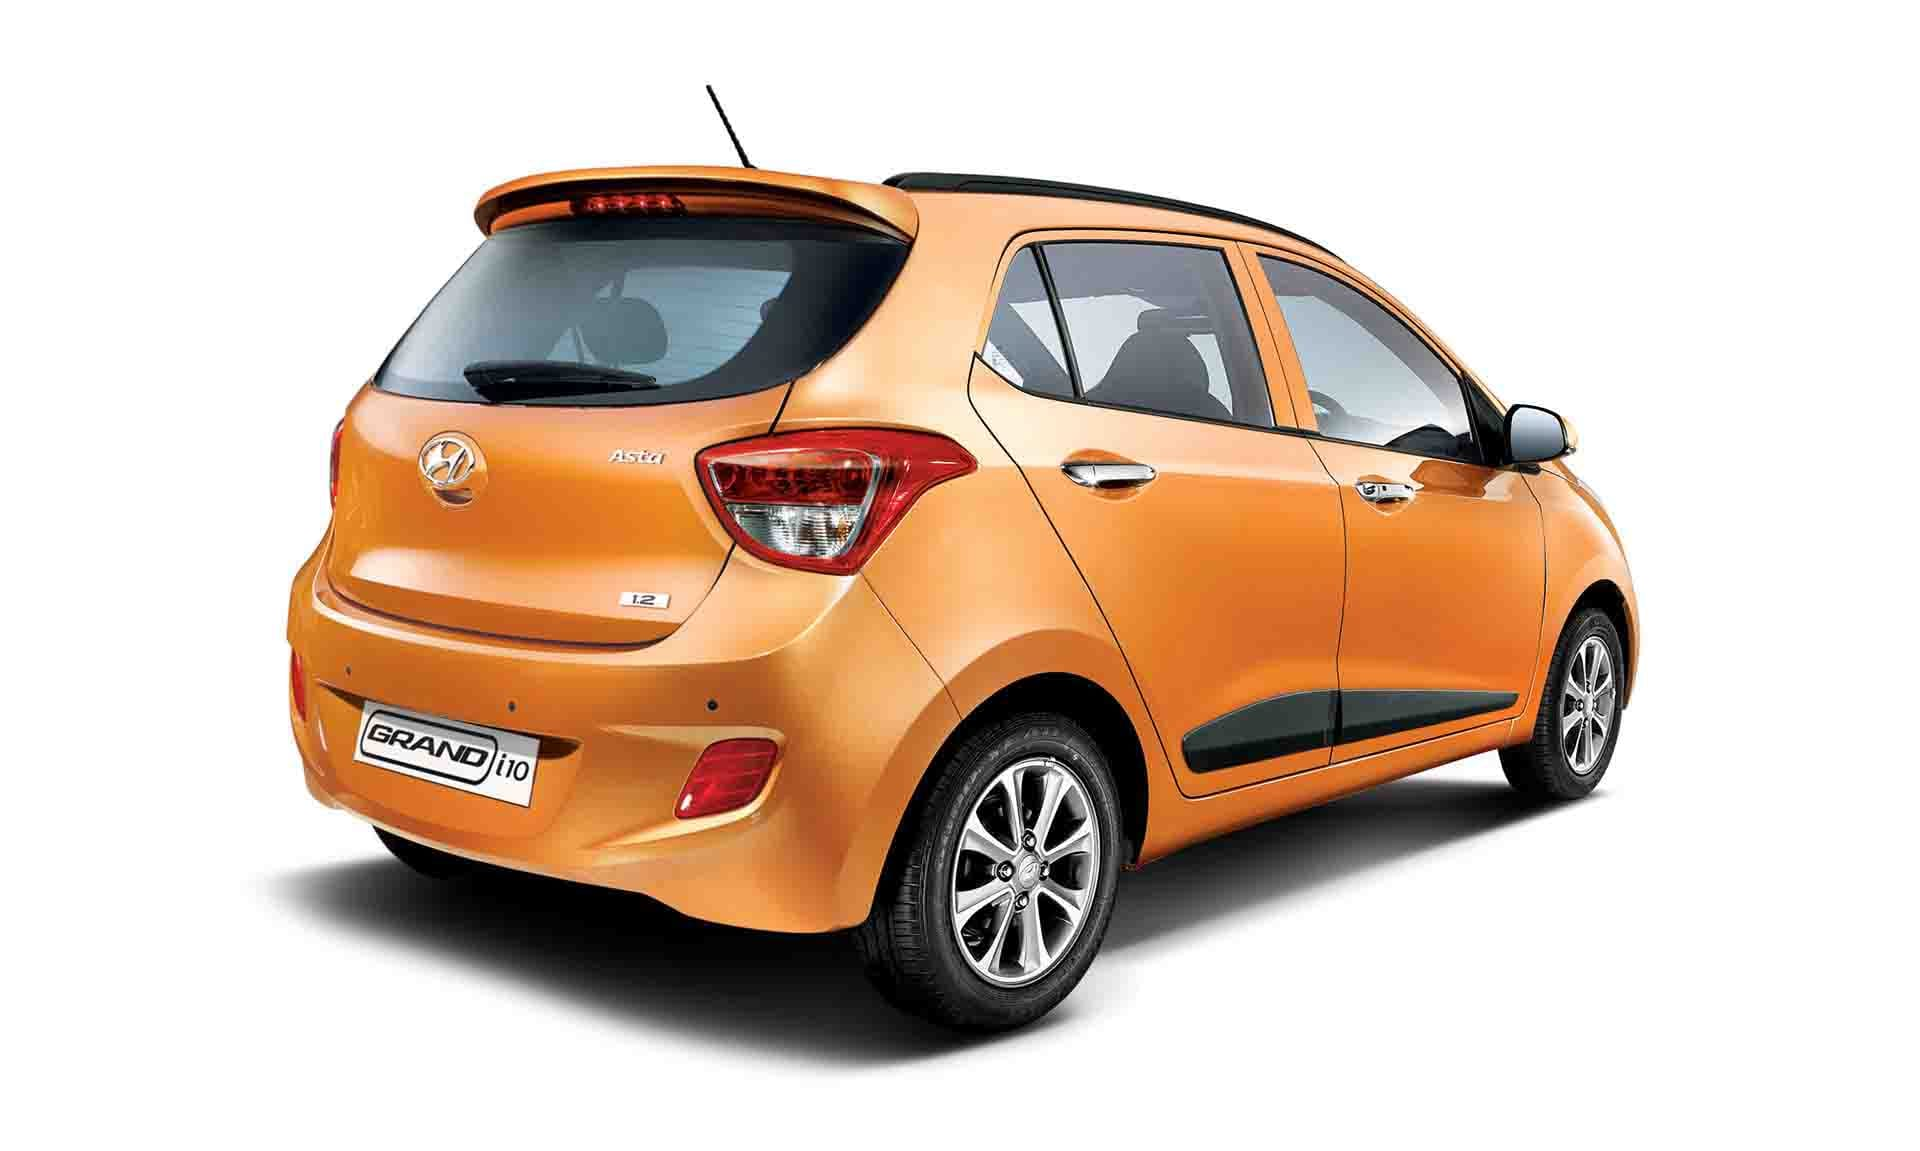 hyundai grand i10 india price review images hyundai cars. Black Bedroom Furniture Sets. Home Design Ideas